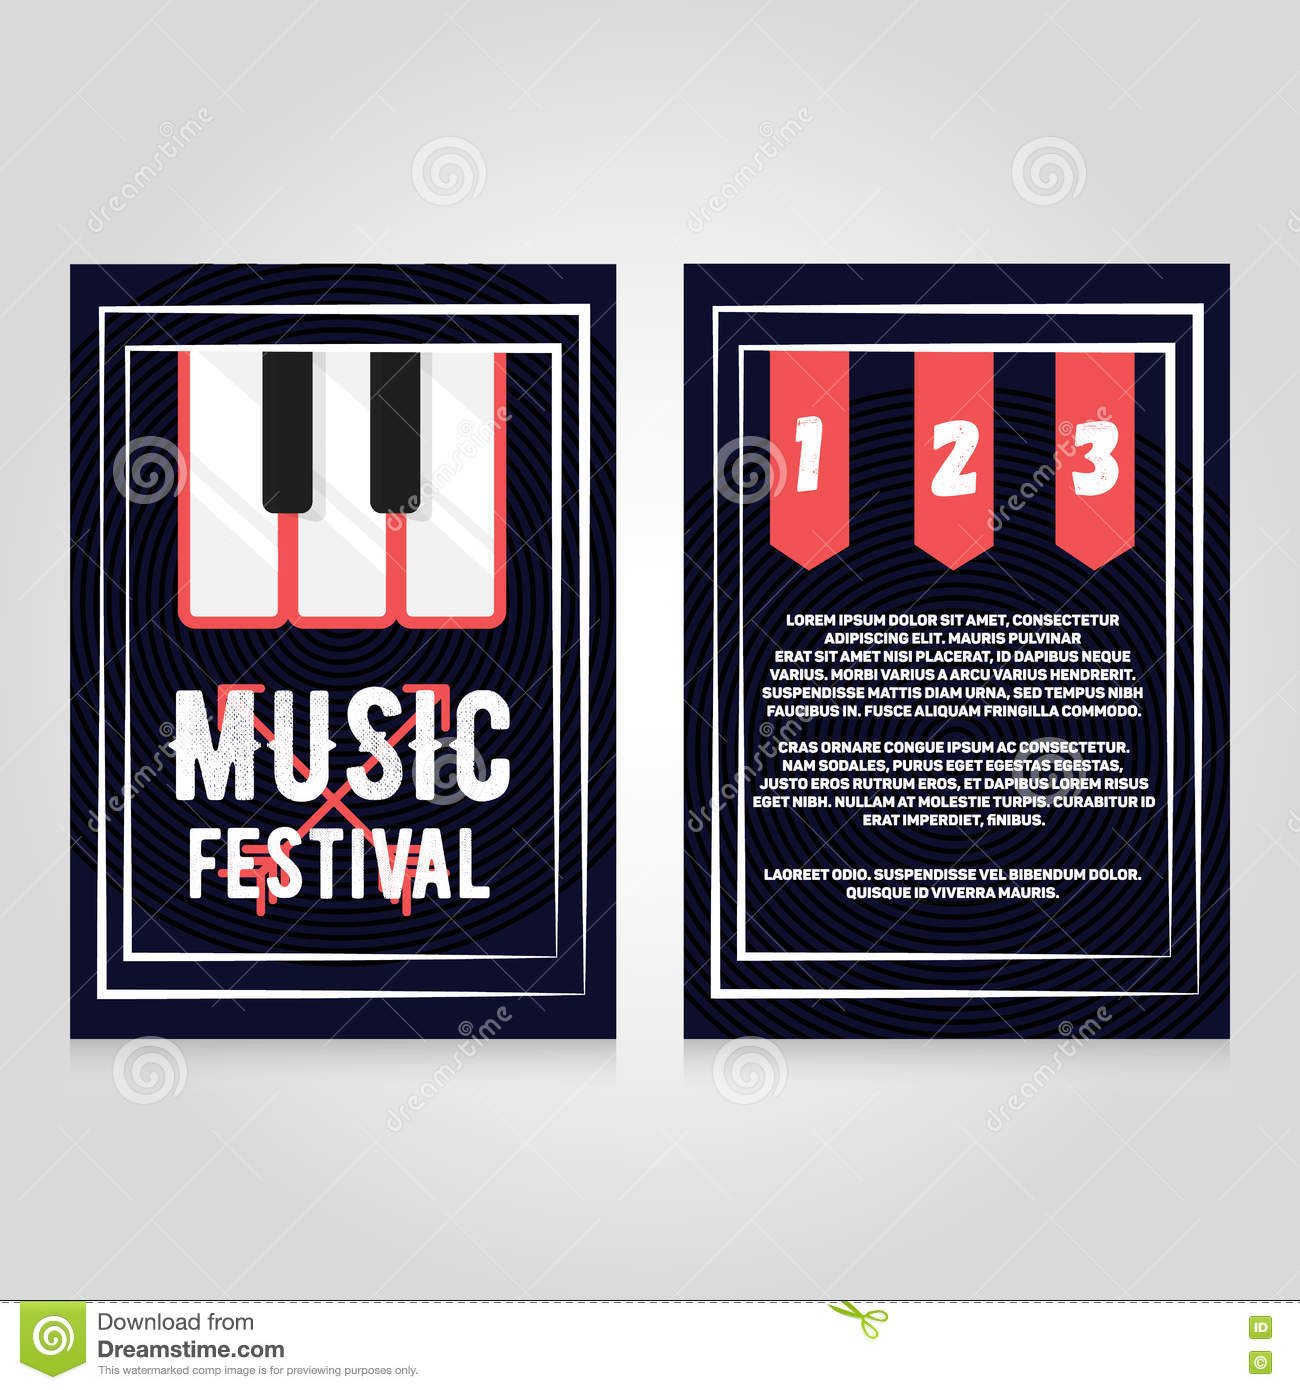 Music festival brochure flier design template. Vector concert poster illustration. Leaflet cover layout in A4 size